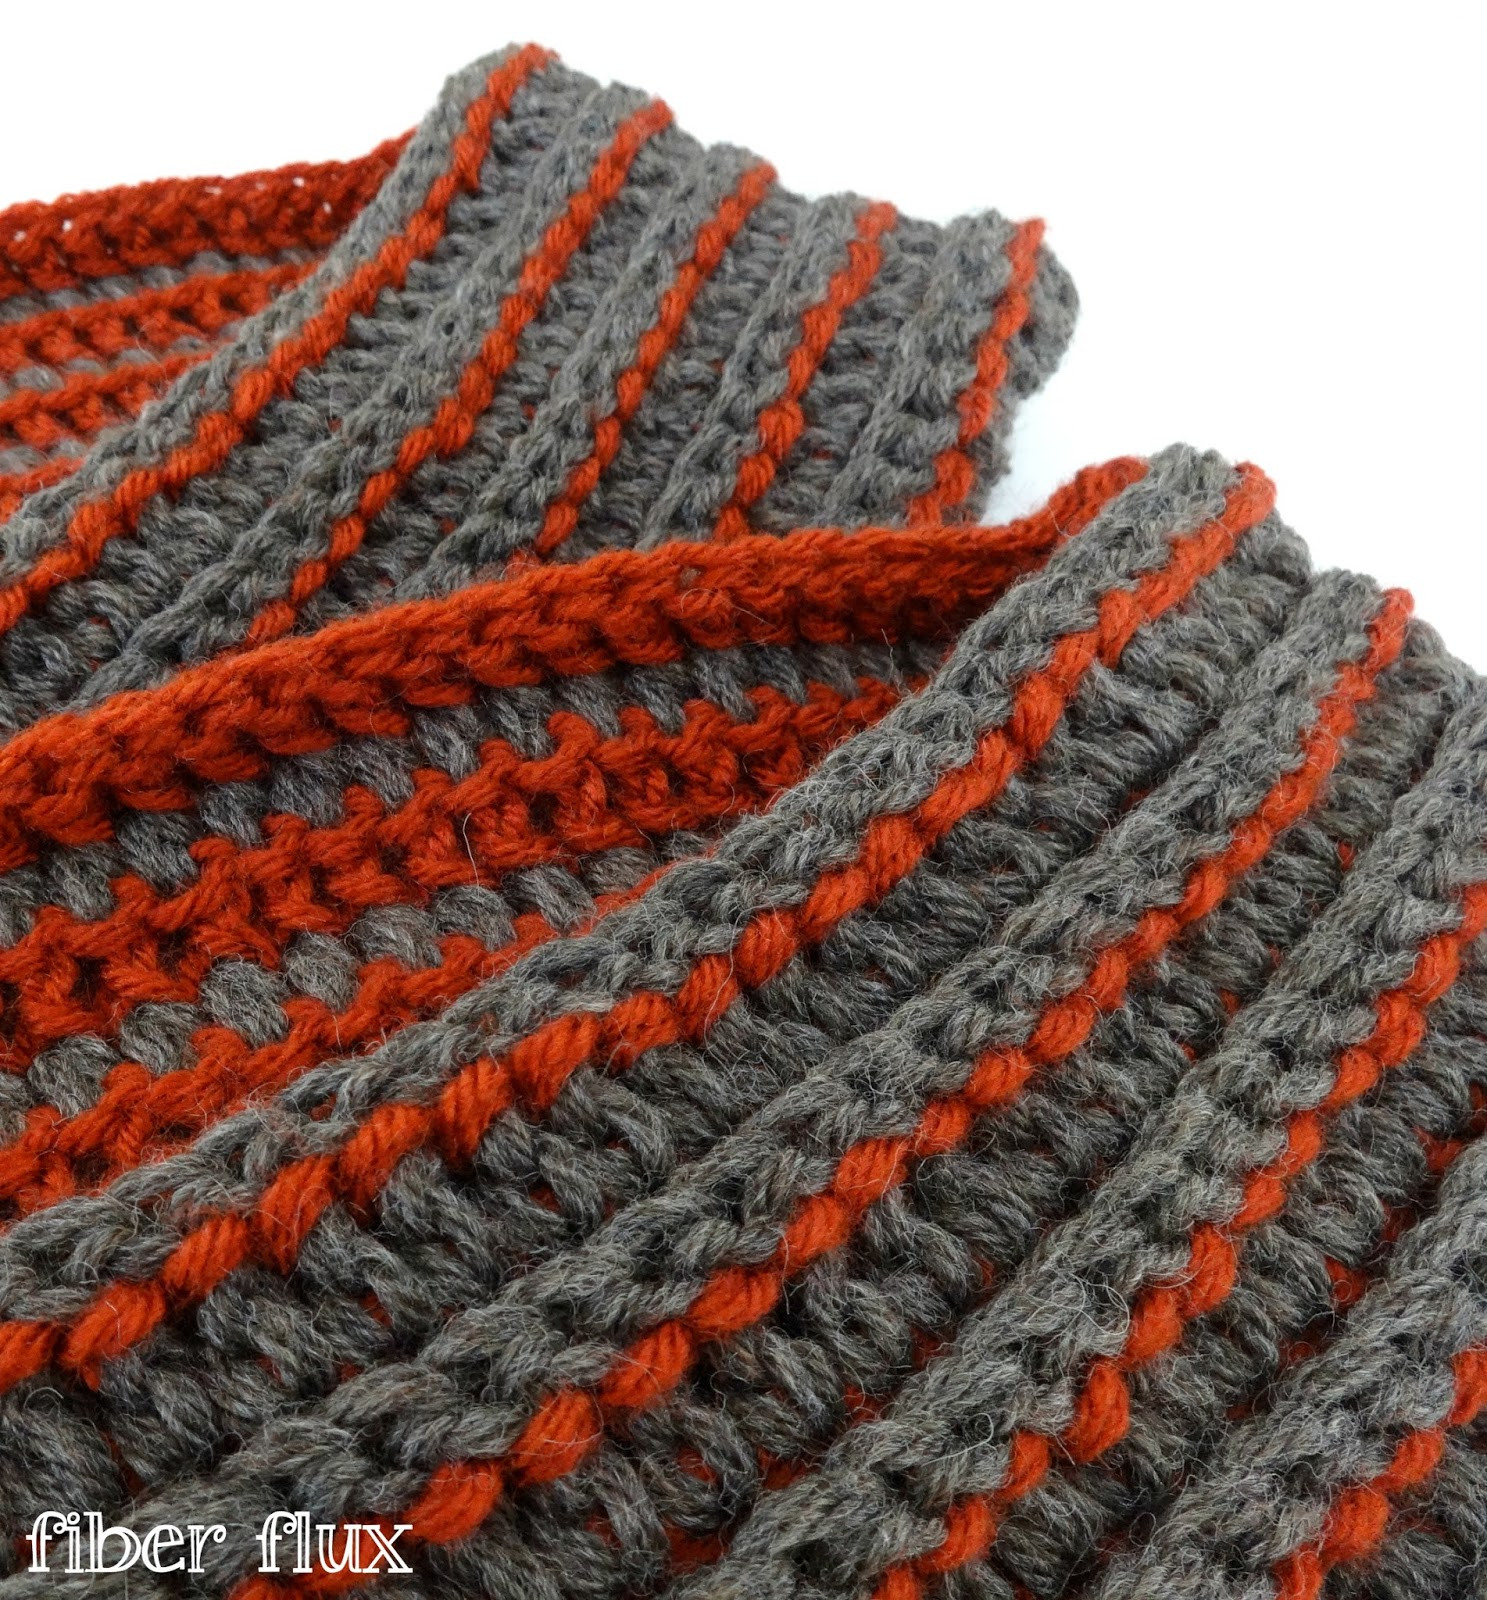 Crochet Mens Scarf Unique Fiber Flux Free Crochet Pattern the Every Man Scarf Of Gorgeous 49 Ideas Crochet Mens Scarf